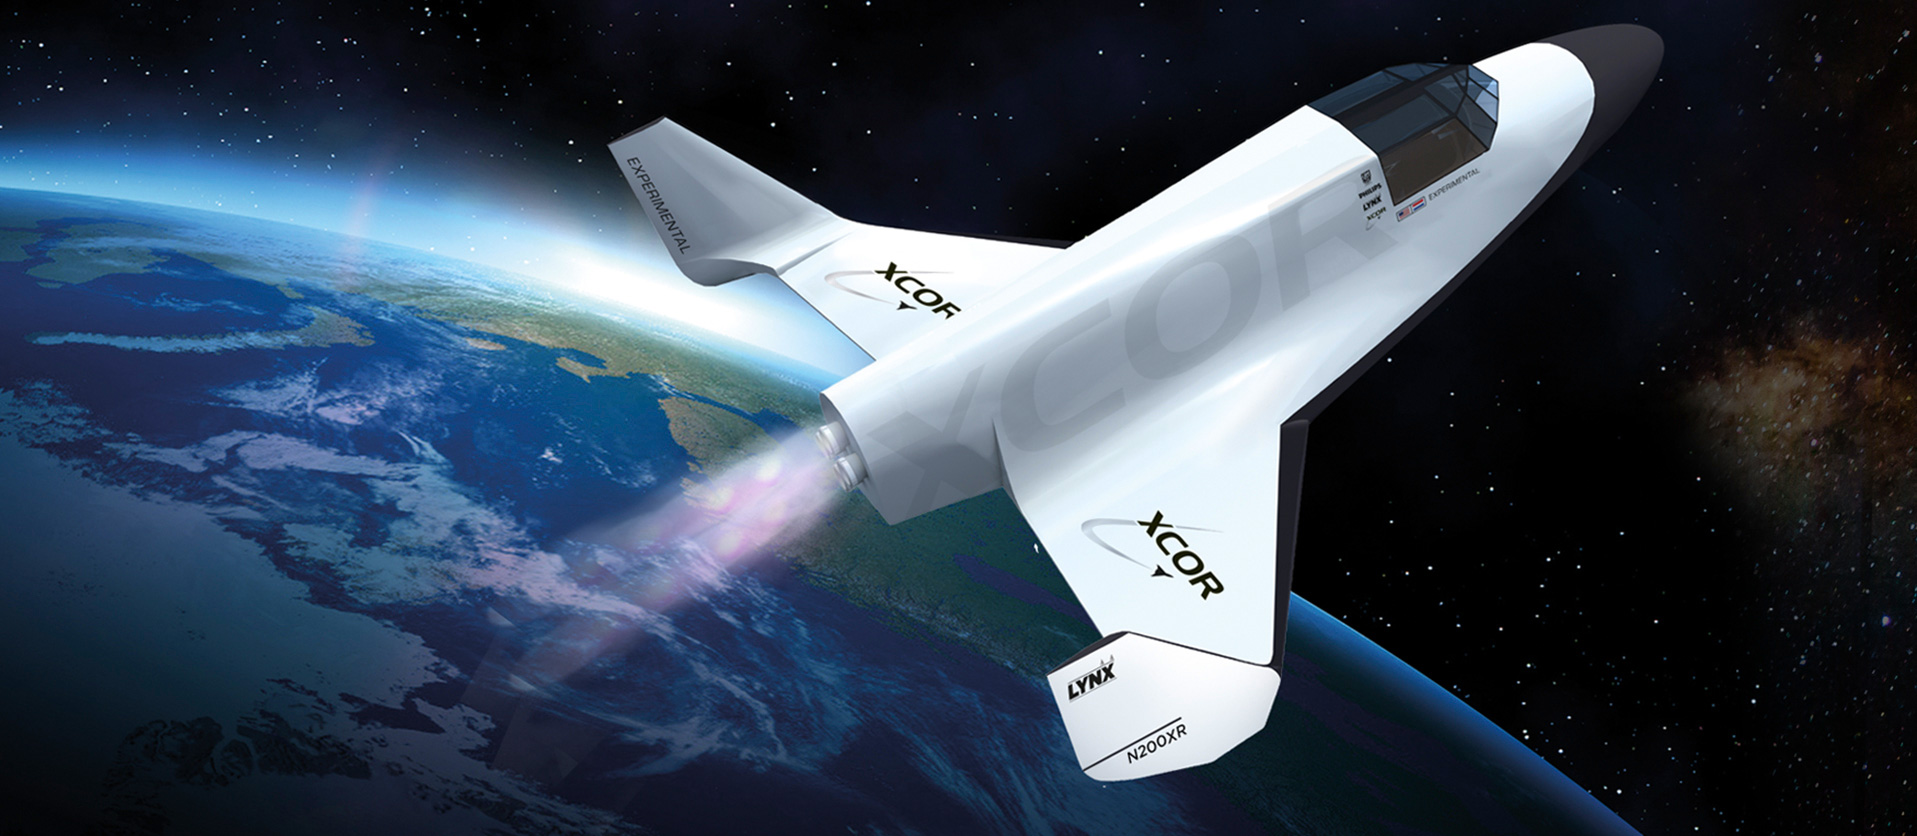 Lynx Spacecraft – XCOR Aerospace